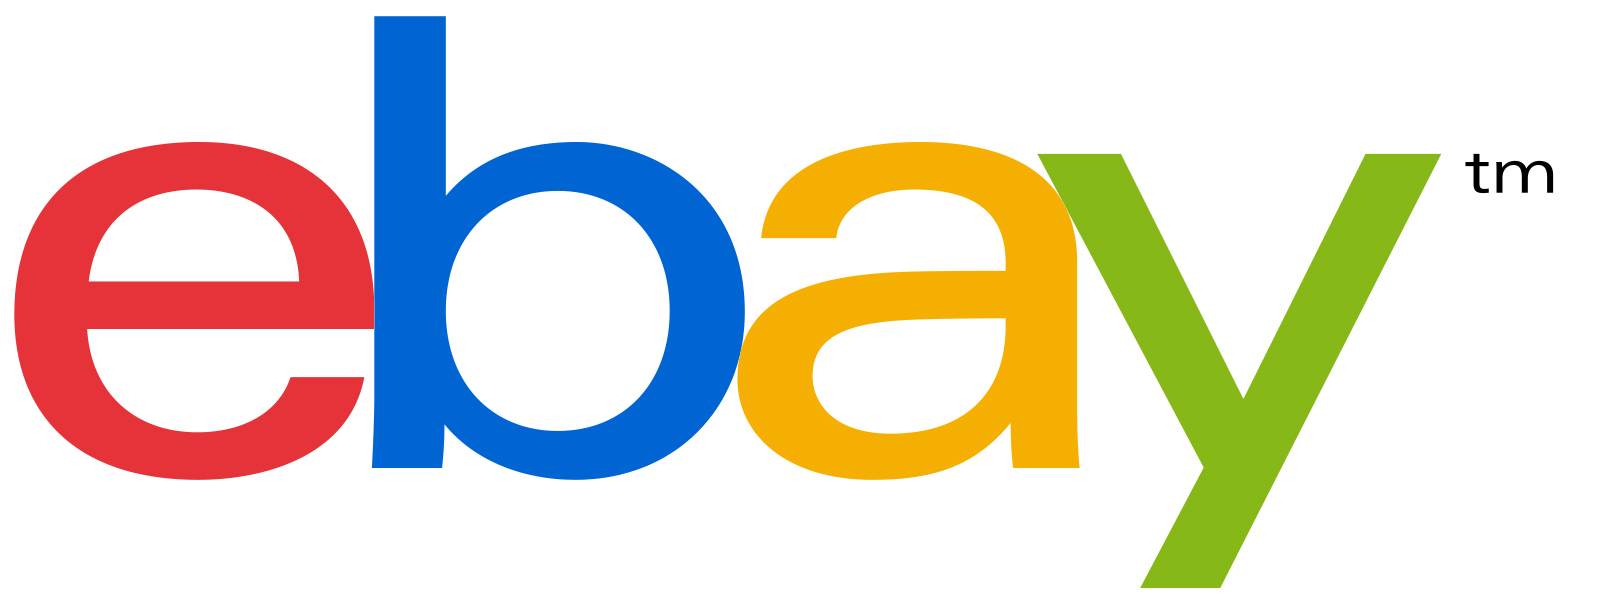 Shopping with eBay for the Holidays